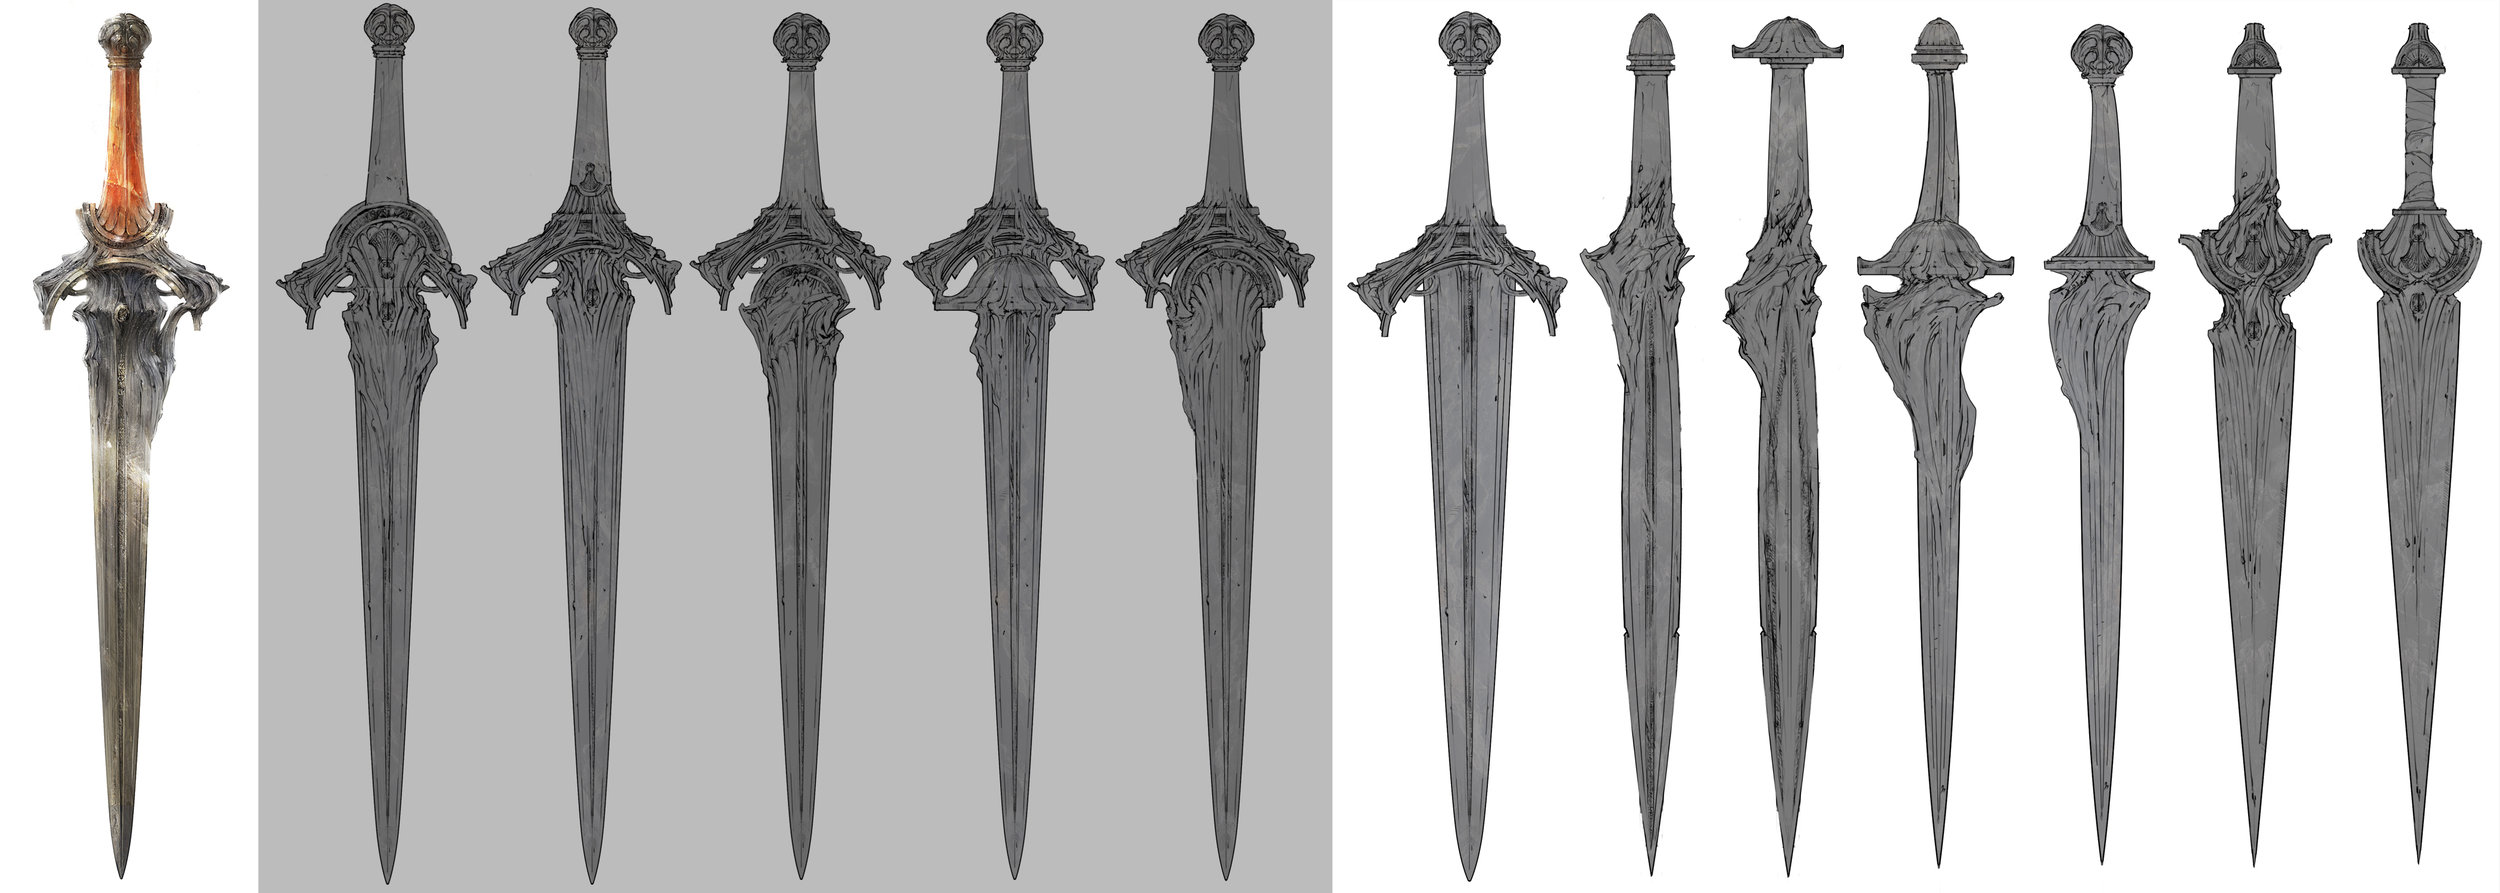 24 - Props Asura Weapons Swords 1.jpg